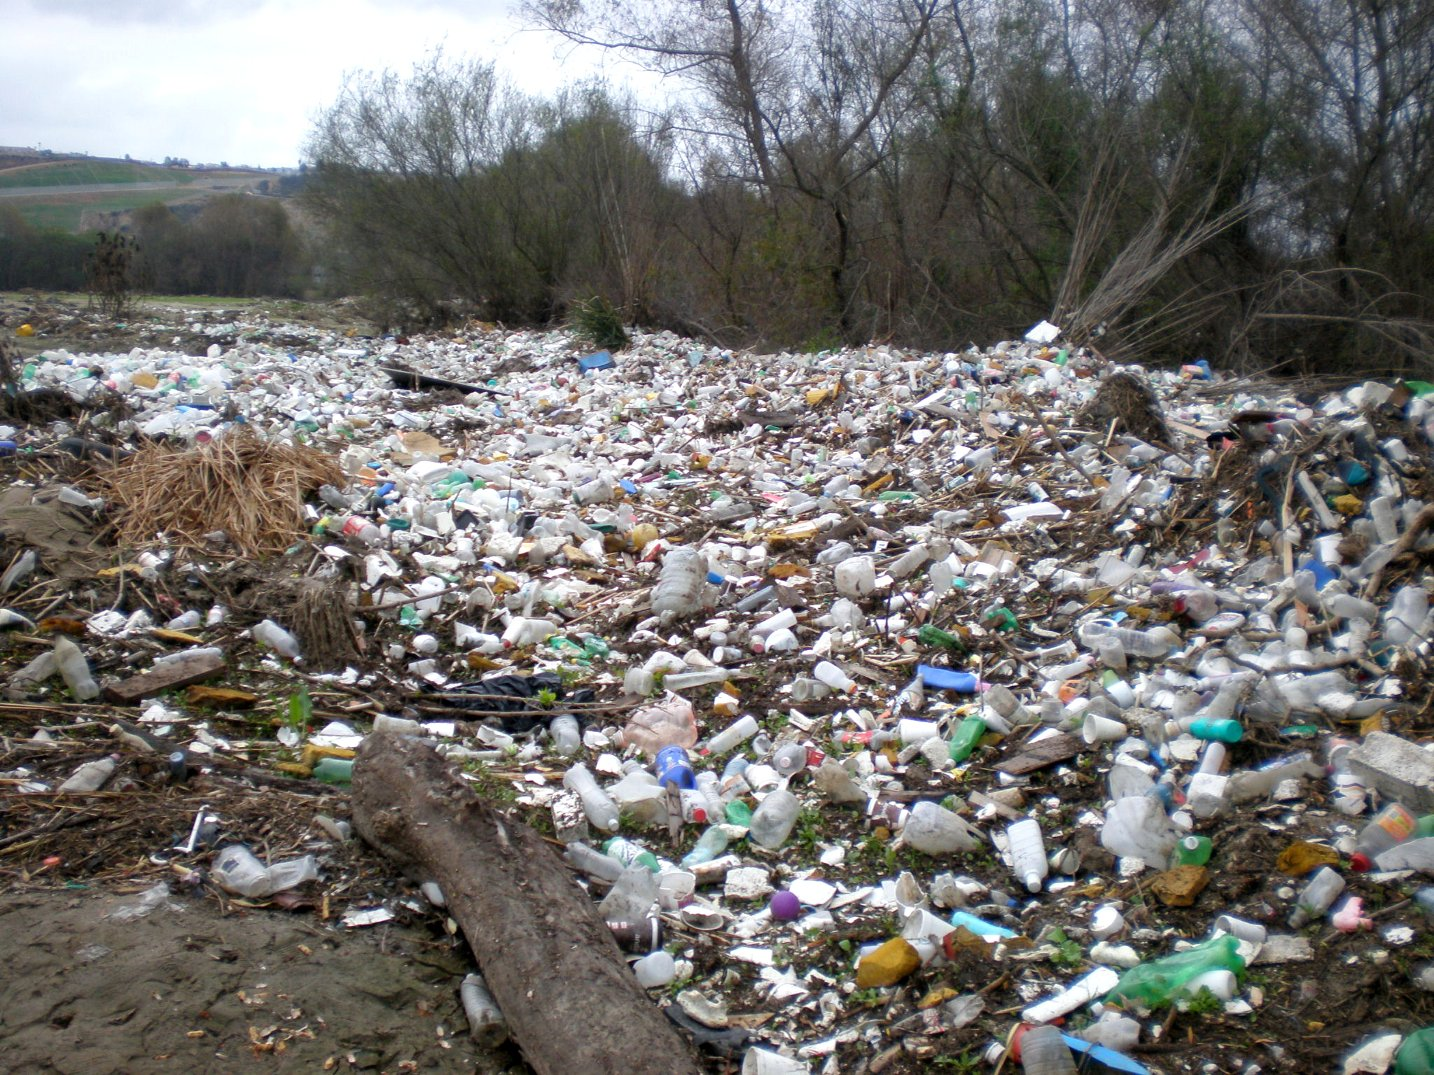 Eight Million Tons Of Plastic Waste Dumped Into Our Oceans